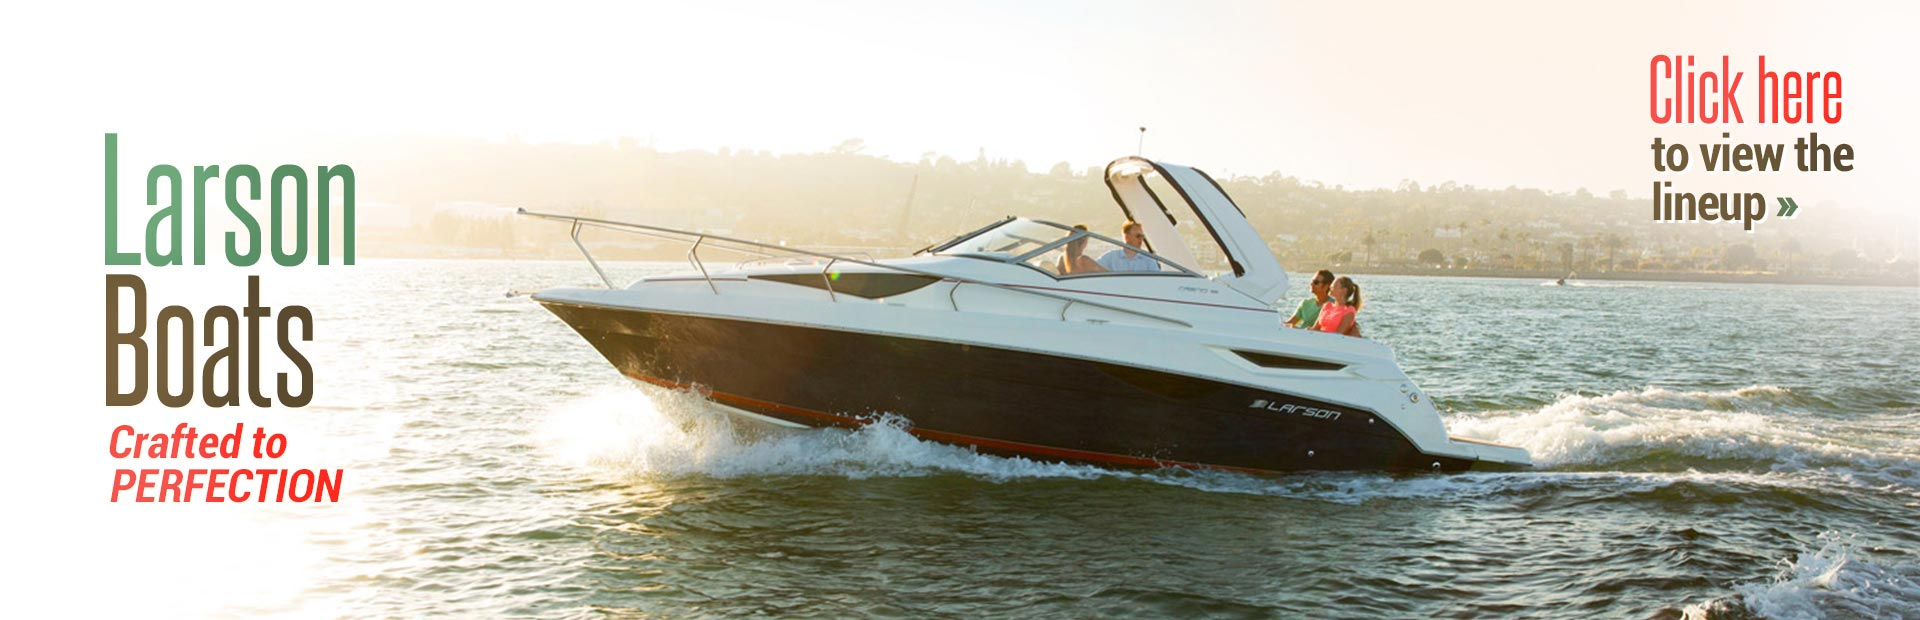 Larson Boats: Click here to view the lineup.